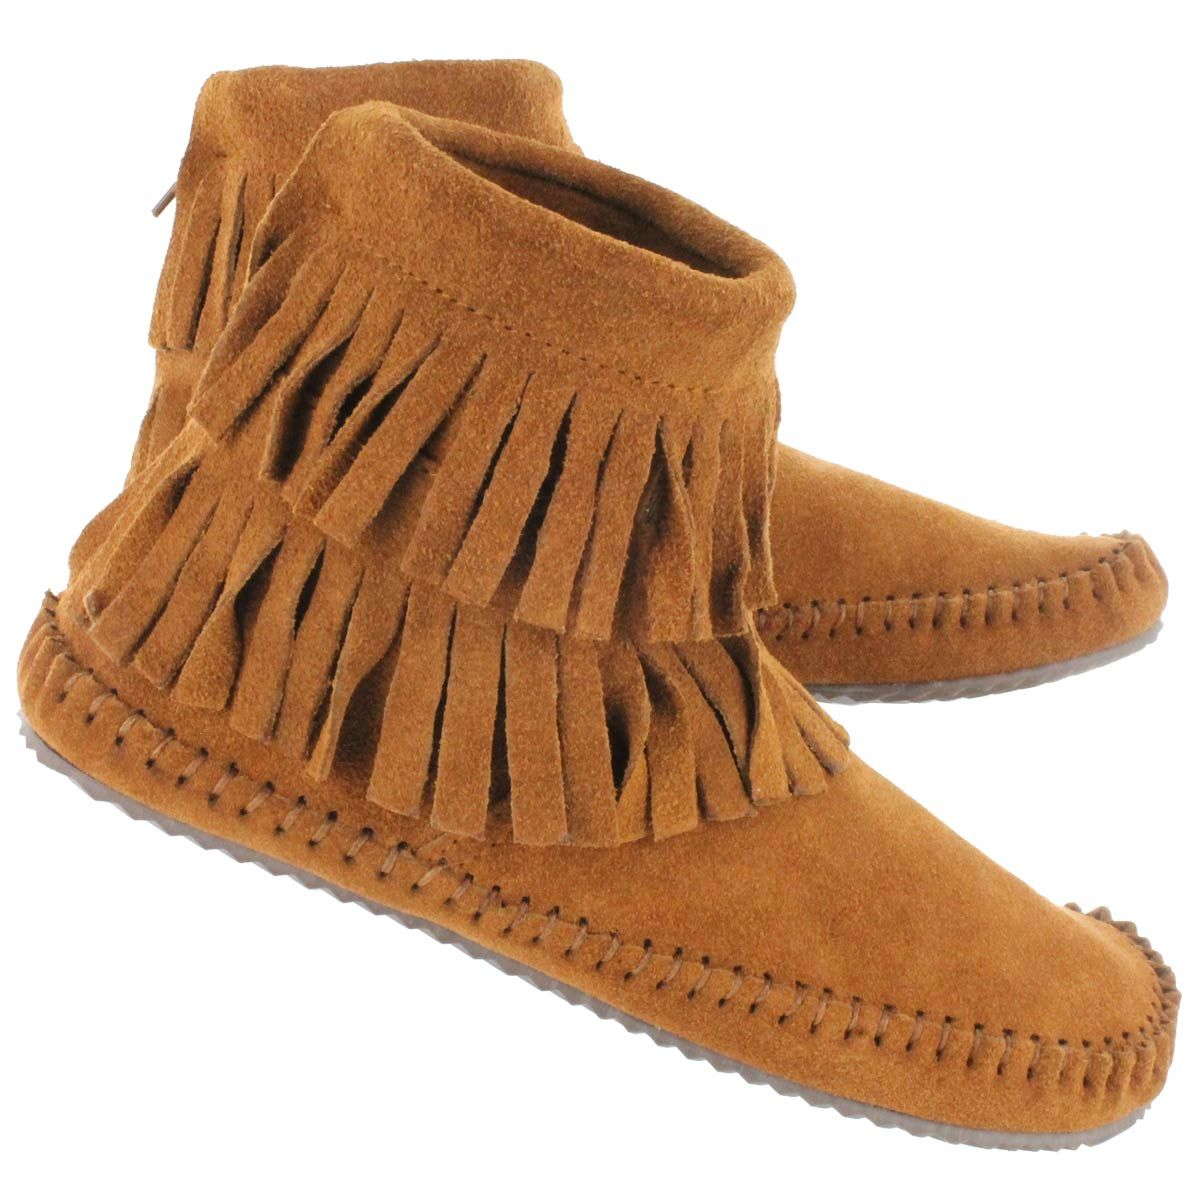 629711c4dd7d Minimalist woman's ankle boot. SoftMoc Women's DEBRA II HI copper suede  back zip mocs. Completely flat, flexible sole if you remove the insert.